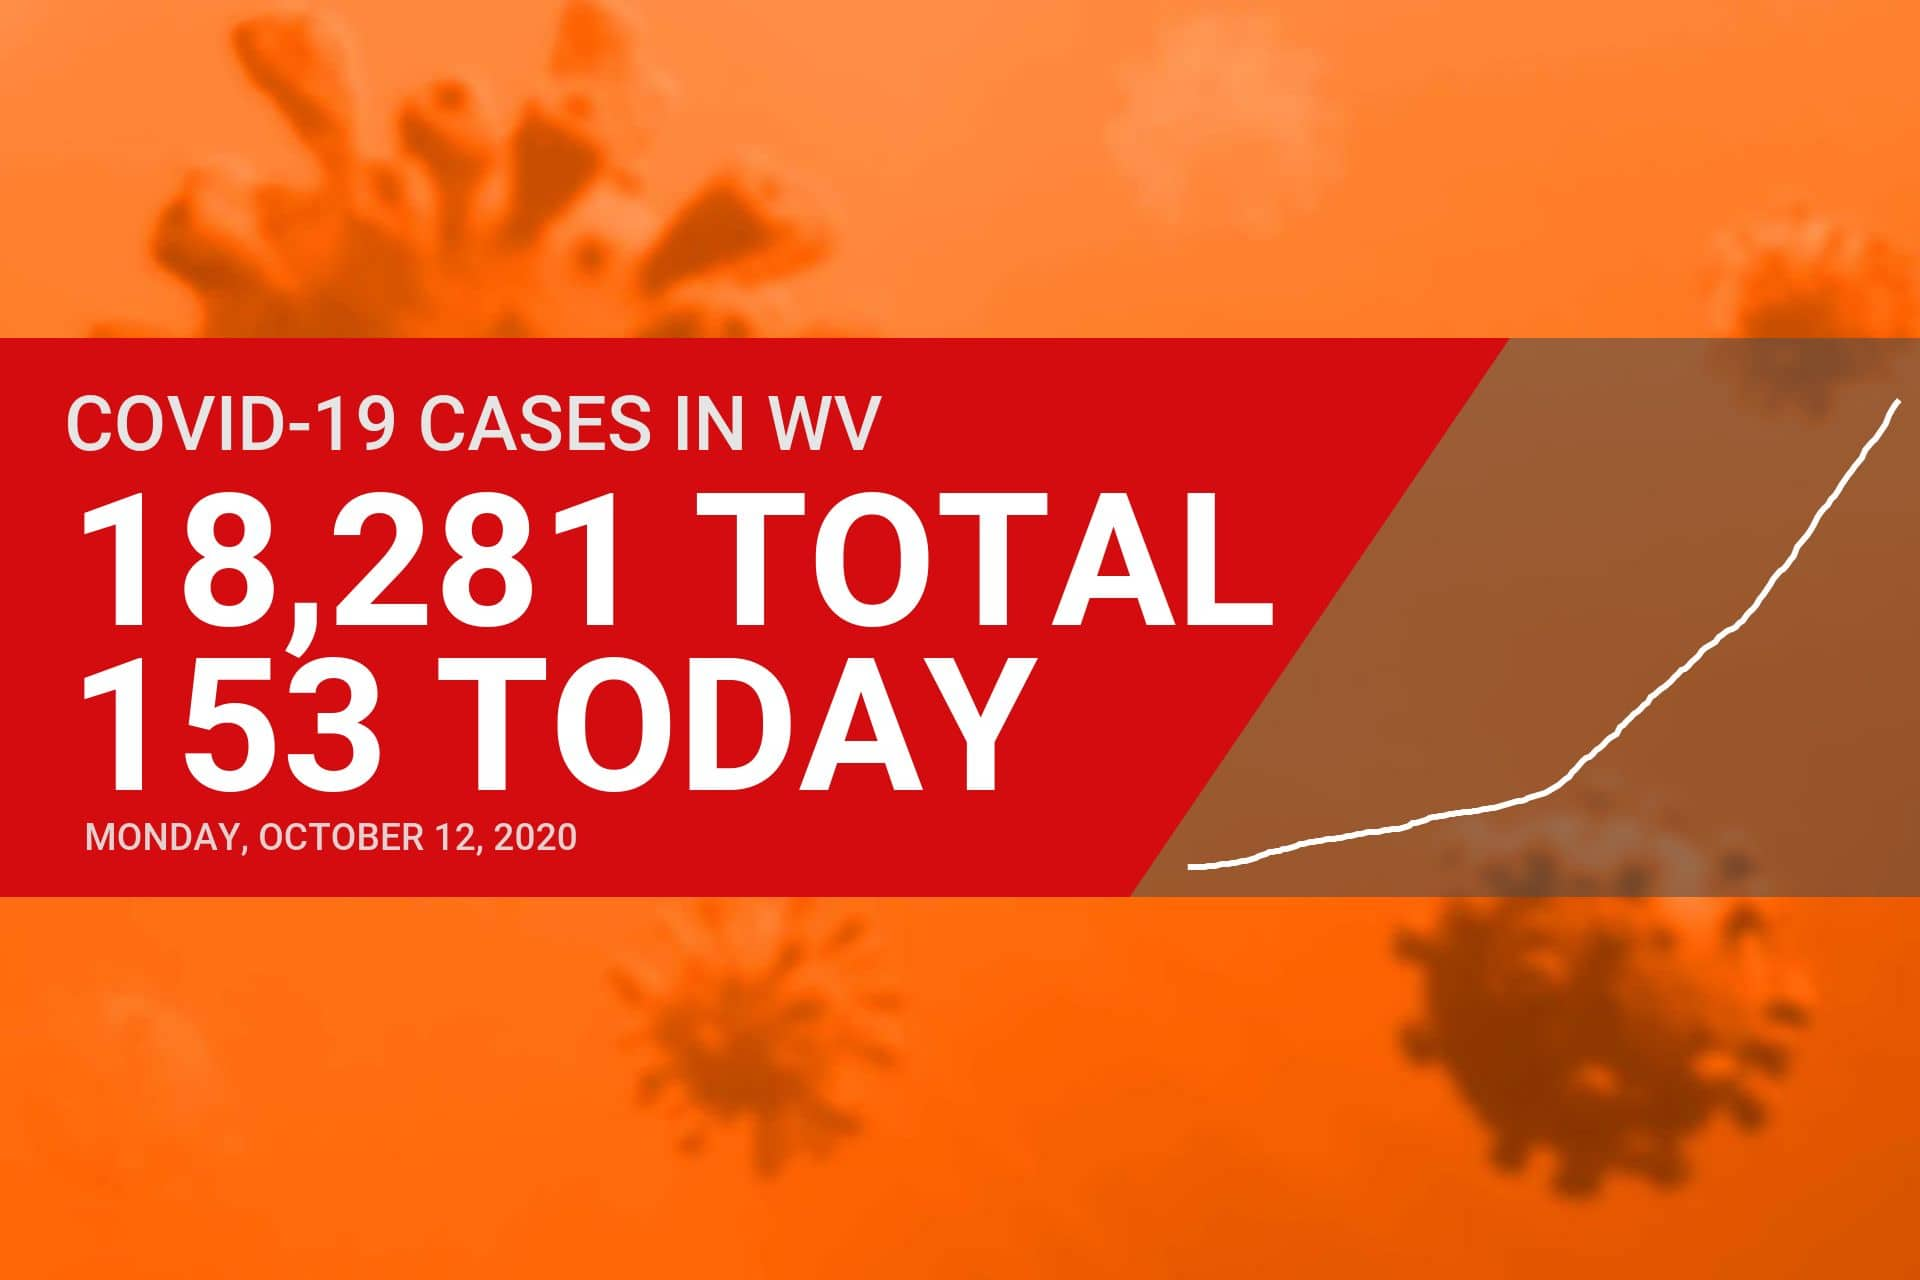 Upshur reports four new COVID-19 cases Monday